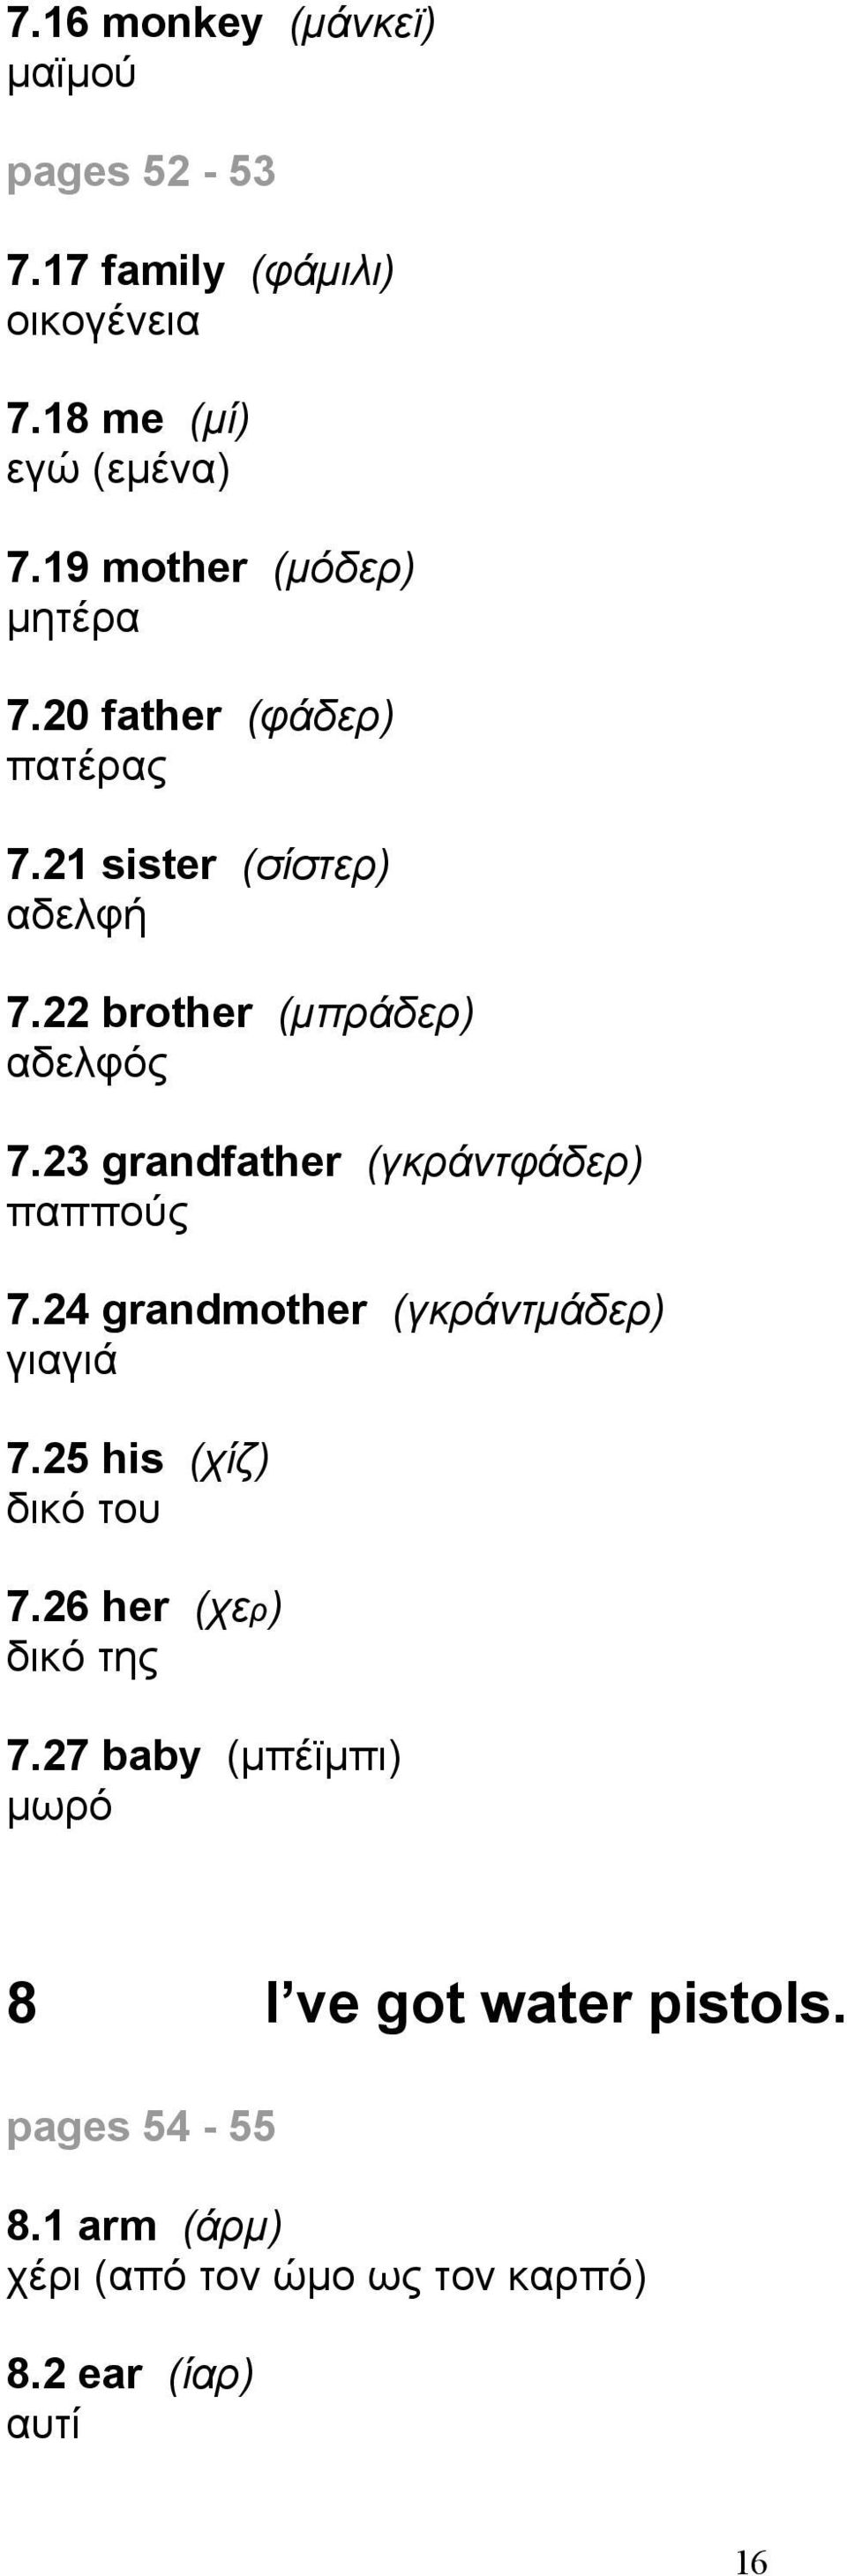 23 grandfather (γκράντφάδερ) παππούς 7.24 grandmother (γκράντμάδερ) γιαγιά 7.25 his (χίζ) δικό του 7.